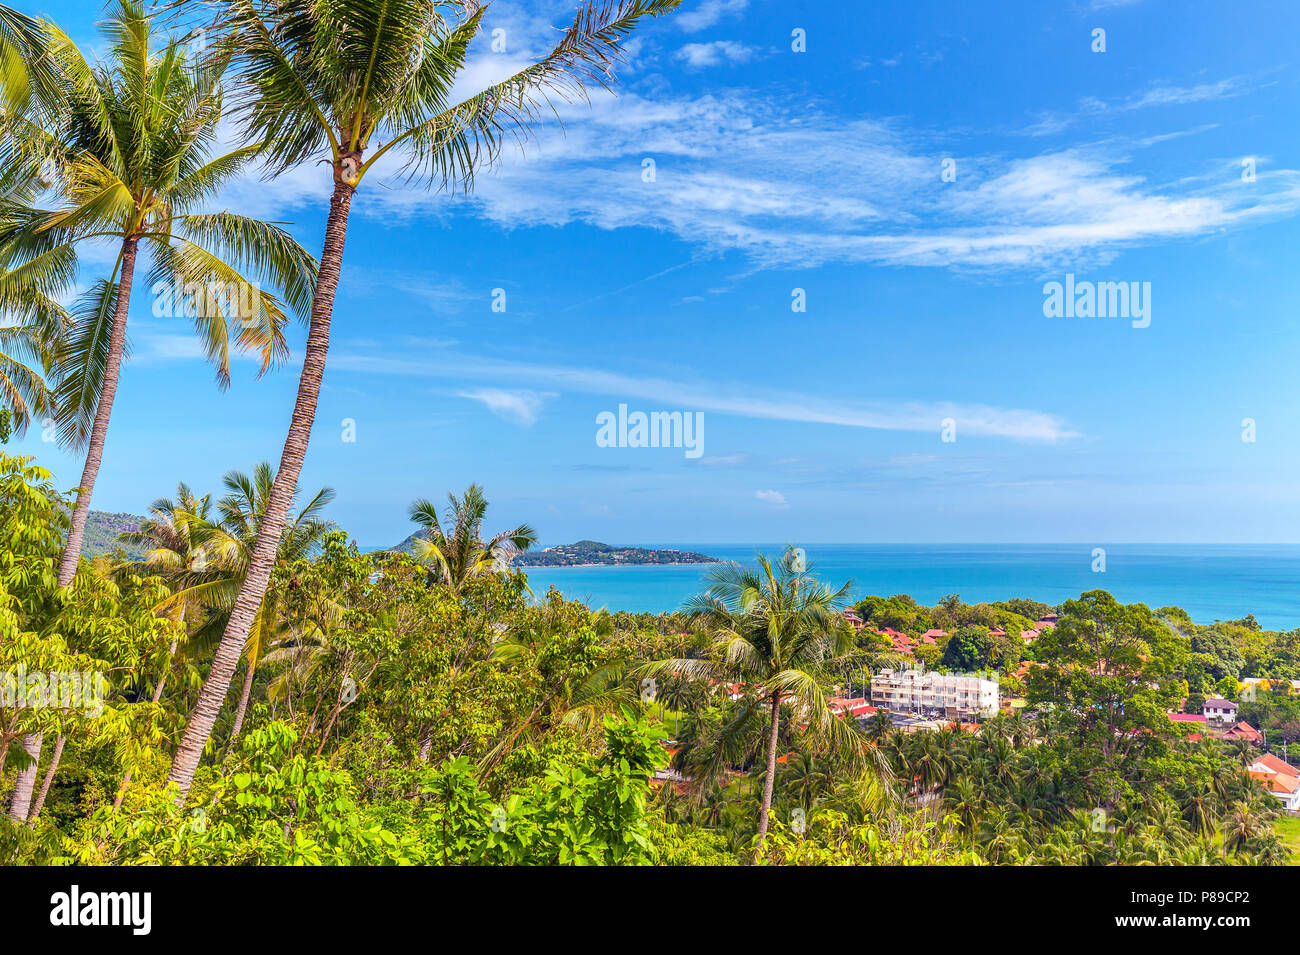 Panorama of Koh Samui in Thailand. - Stock Image